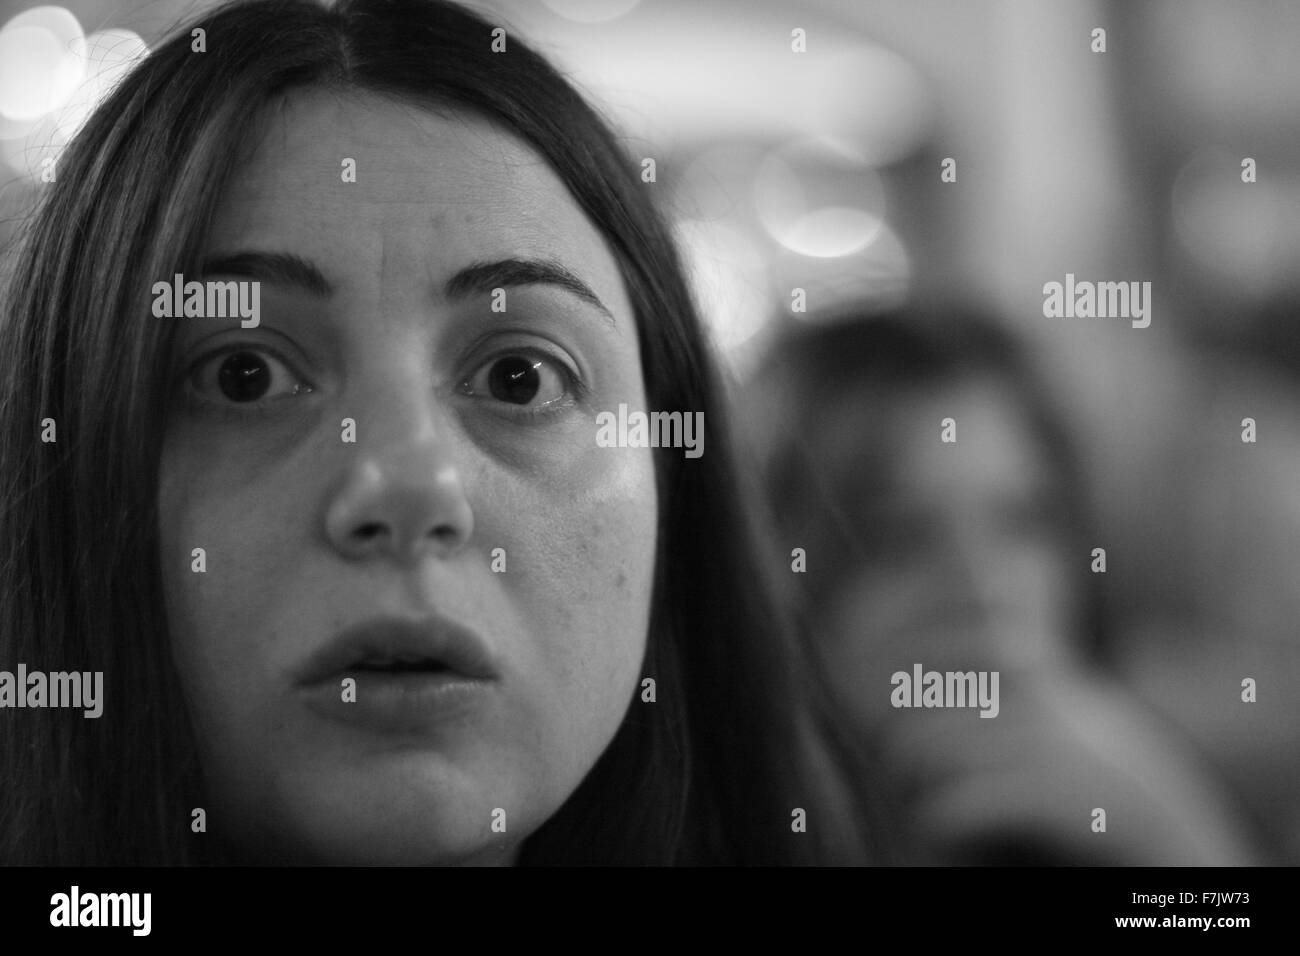 Young woman with surprised / concerned look staring at the camera with blurred background in black and white - Stock Image